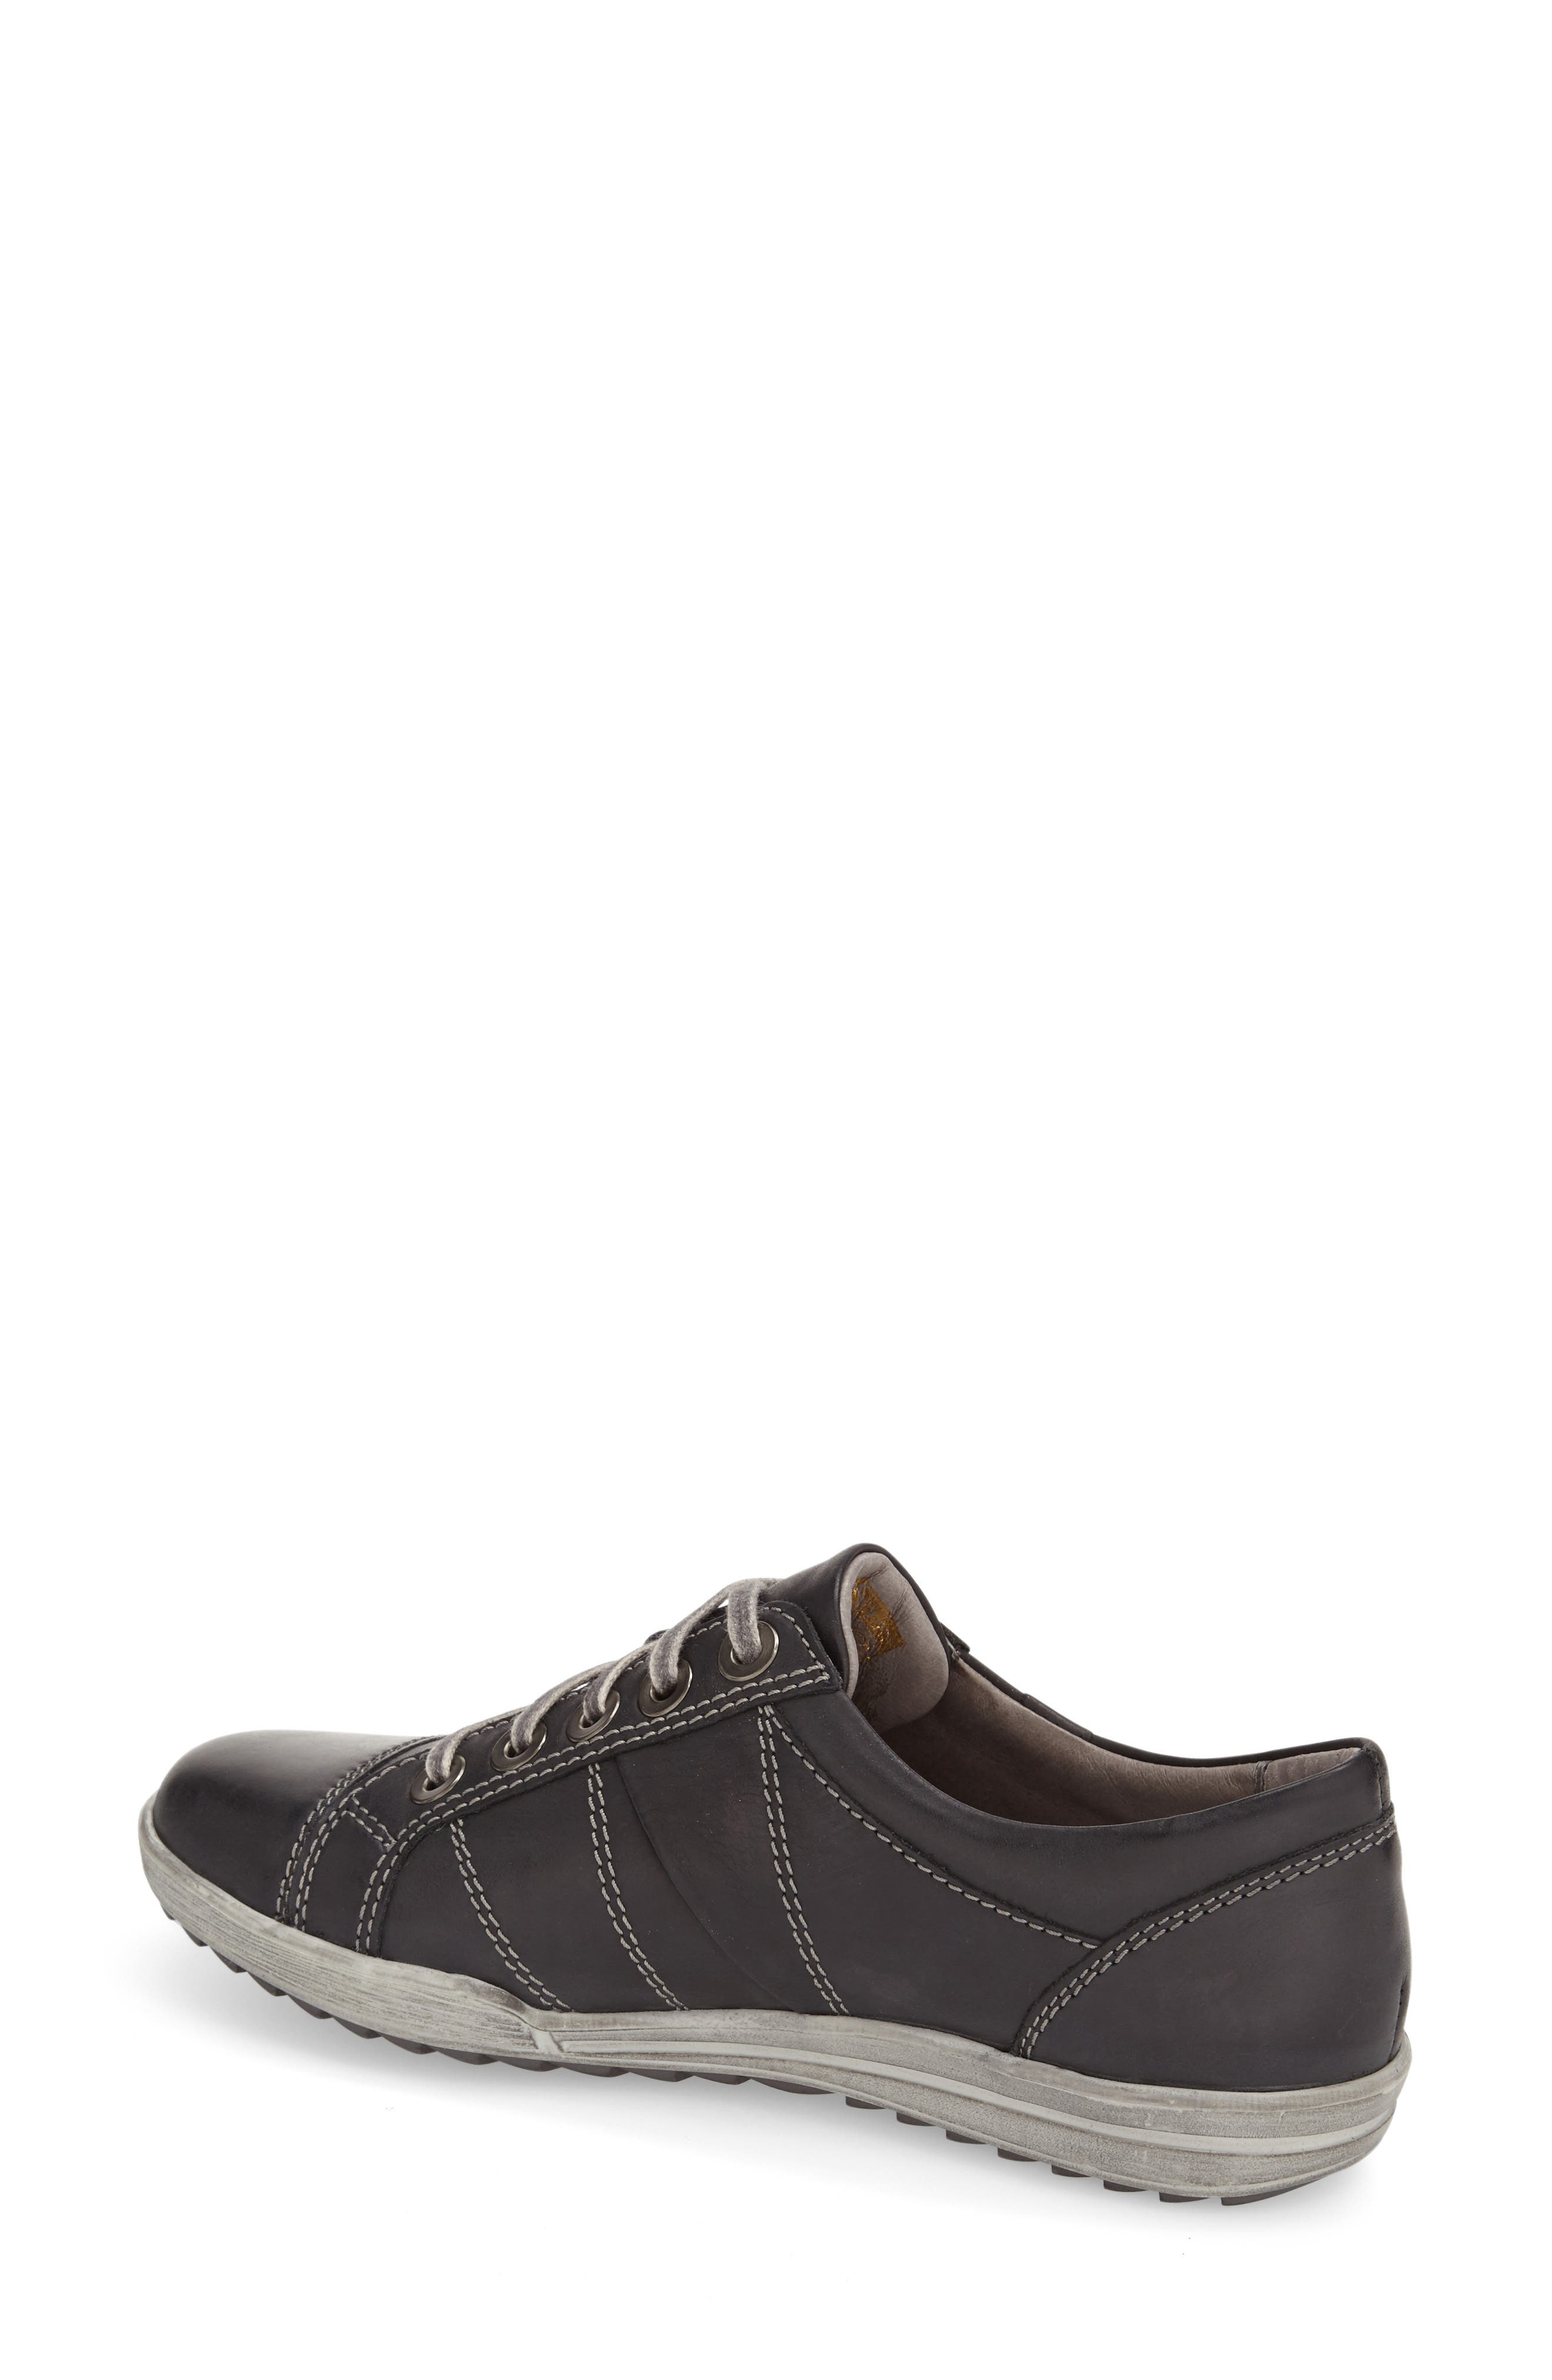 'Dany 05' Leather Sneaker,                             Alternate thumbnail 28, color,